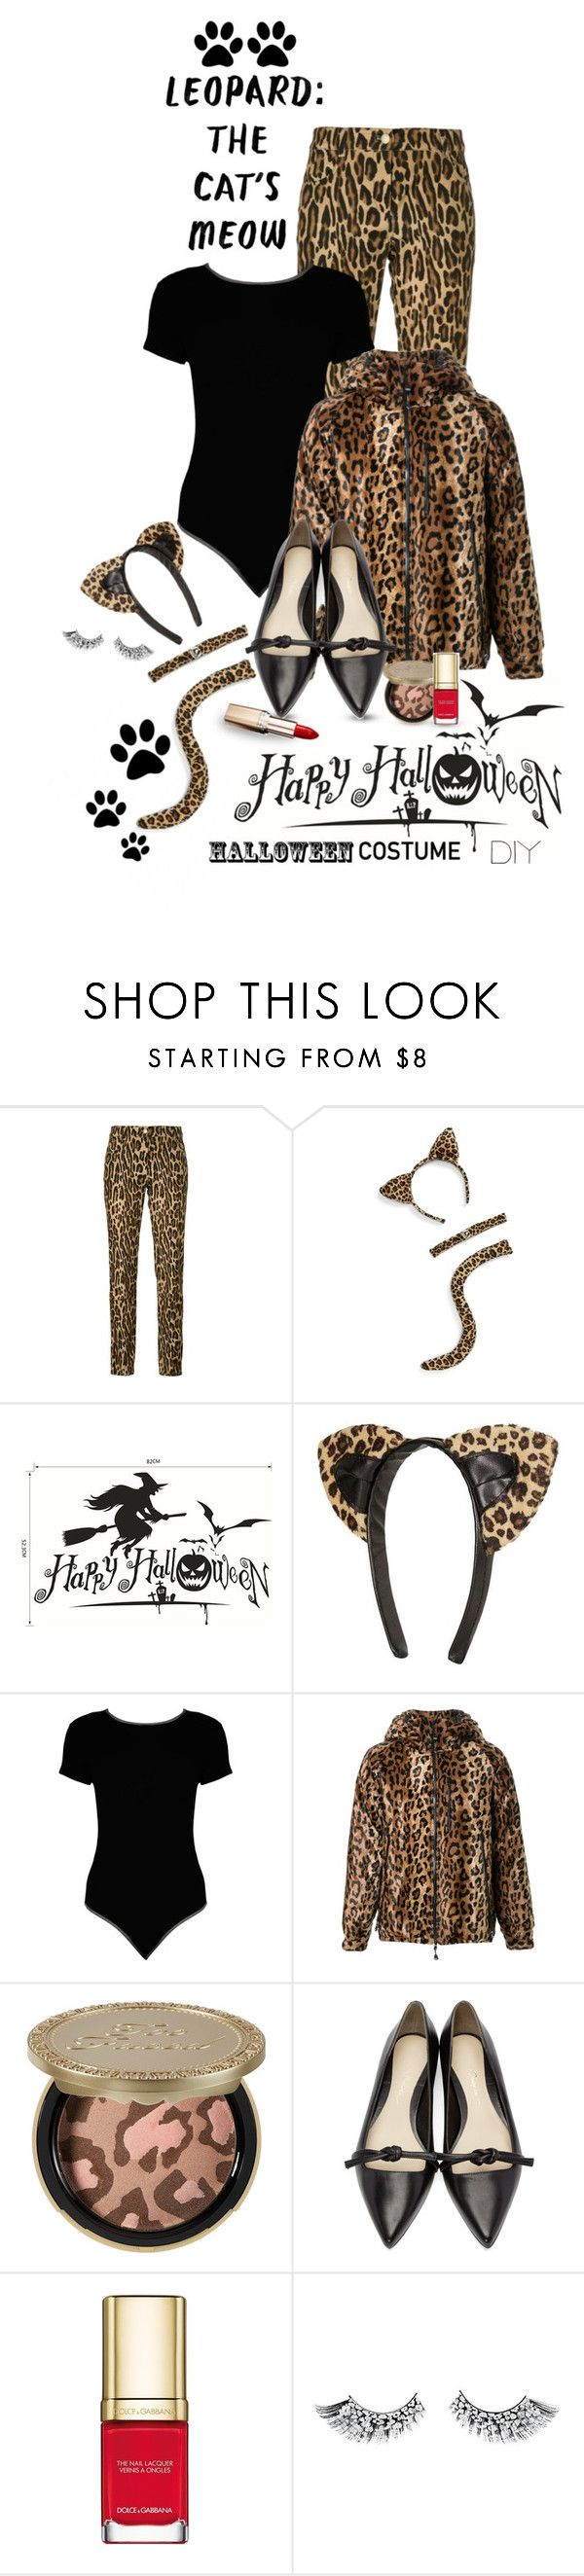 """DIY Halloween Costume - LEOPARD CUTIE"" by shortyluv718 ❤ liked on Polyvore featuring Alberta Ferretti, LULU, Topshop, Boohoo, DressCamp, Too Faced Cosmetics, 3.1 Phillip Lim, Dolce&Gabbana, L'Oréal Paris and halloweencostume"